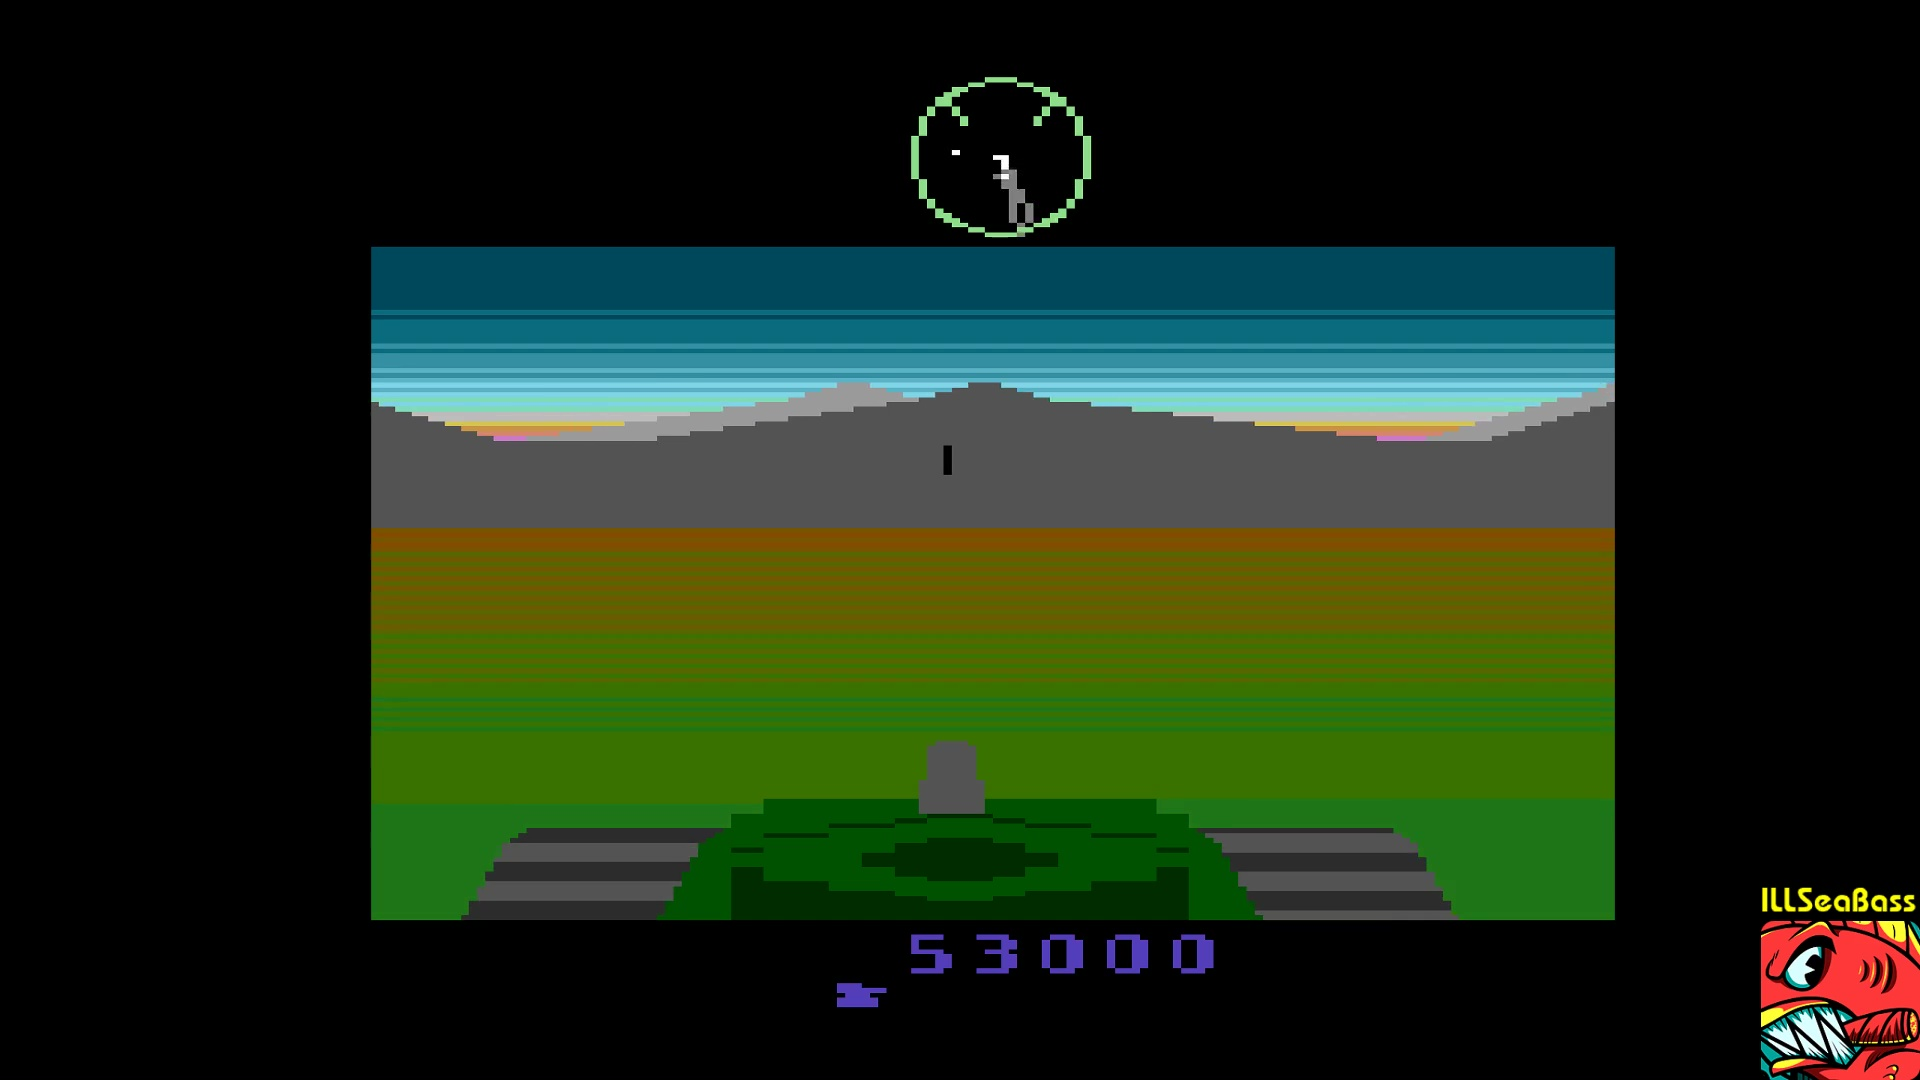 ILLSeaBass: Battlezone (Atari 2600 Emulated) 53,000 points on 2018-01-22 19:08:20